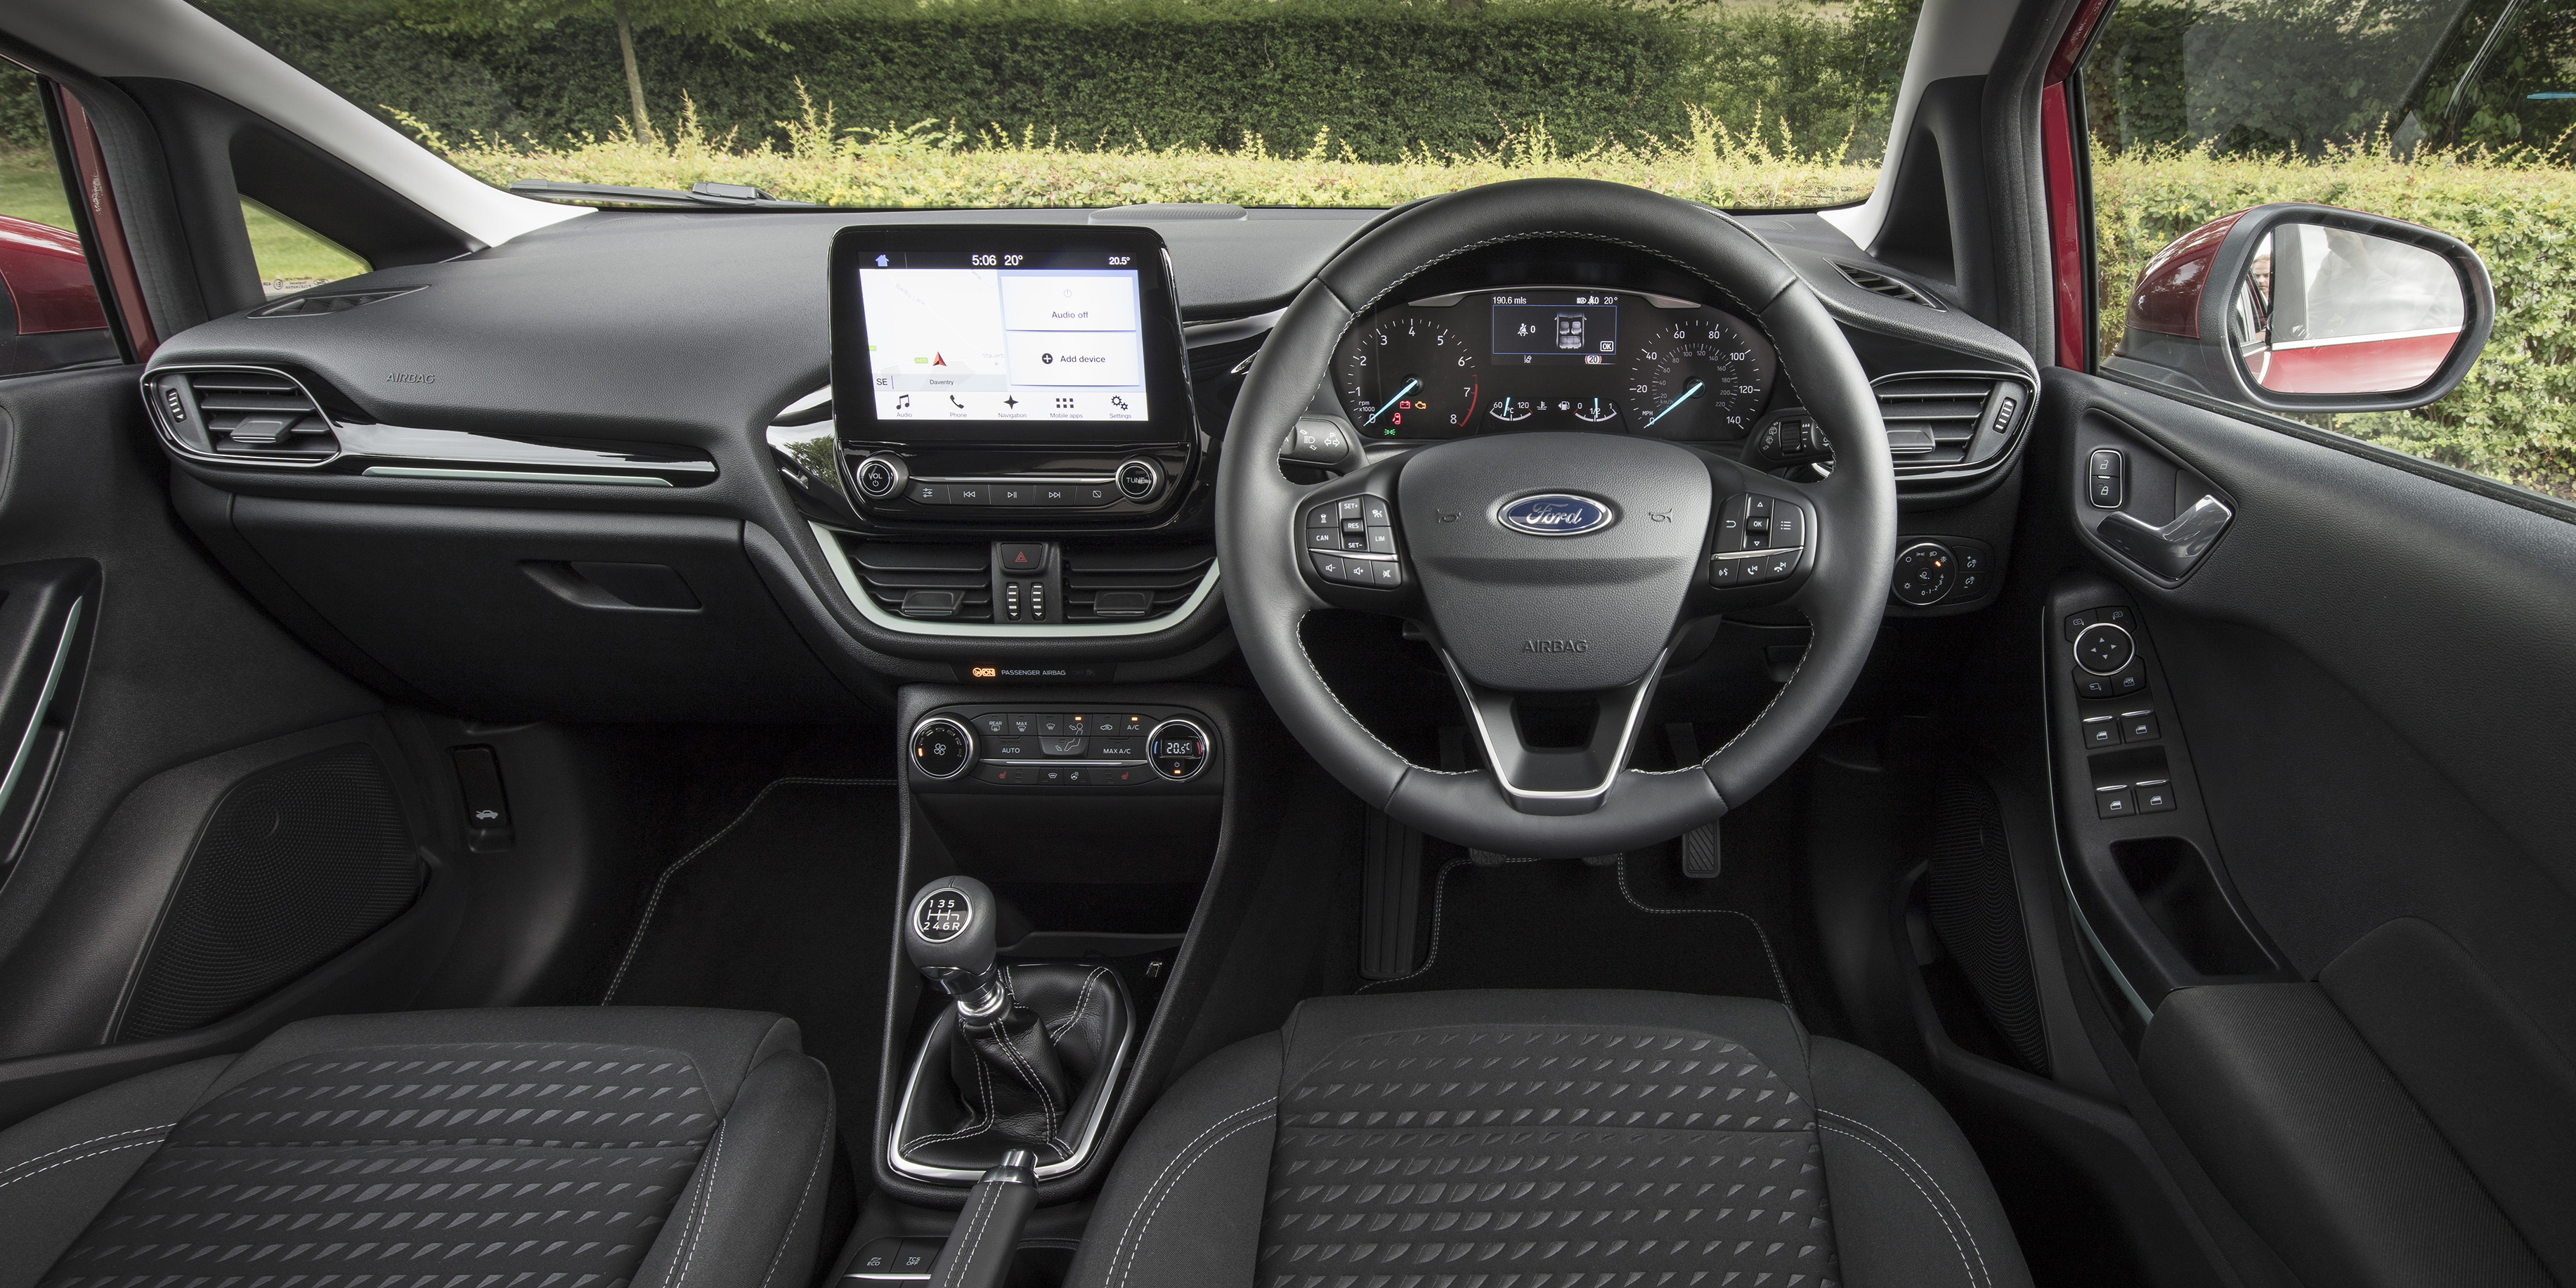 Ford Fiesta Interior & Infotainment | carwow